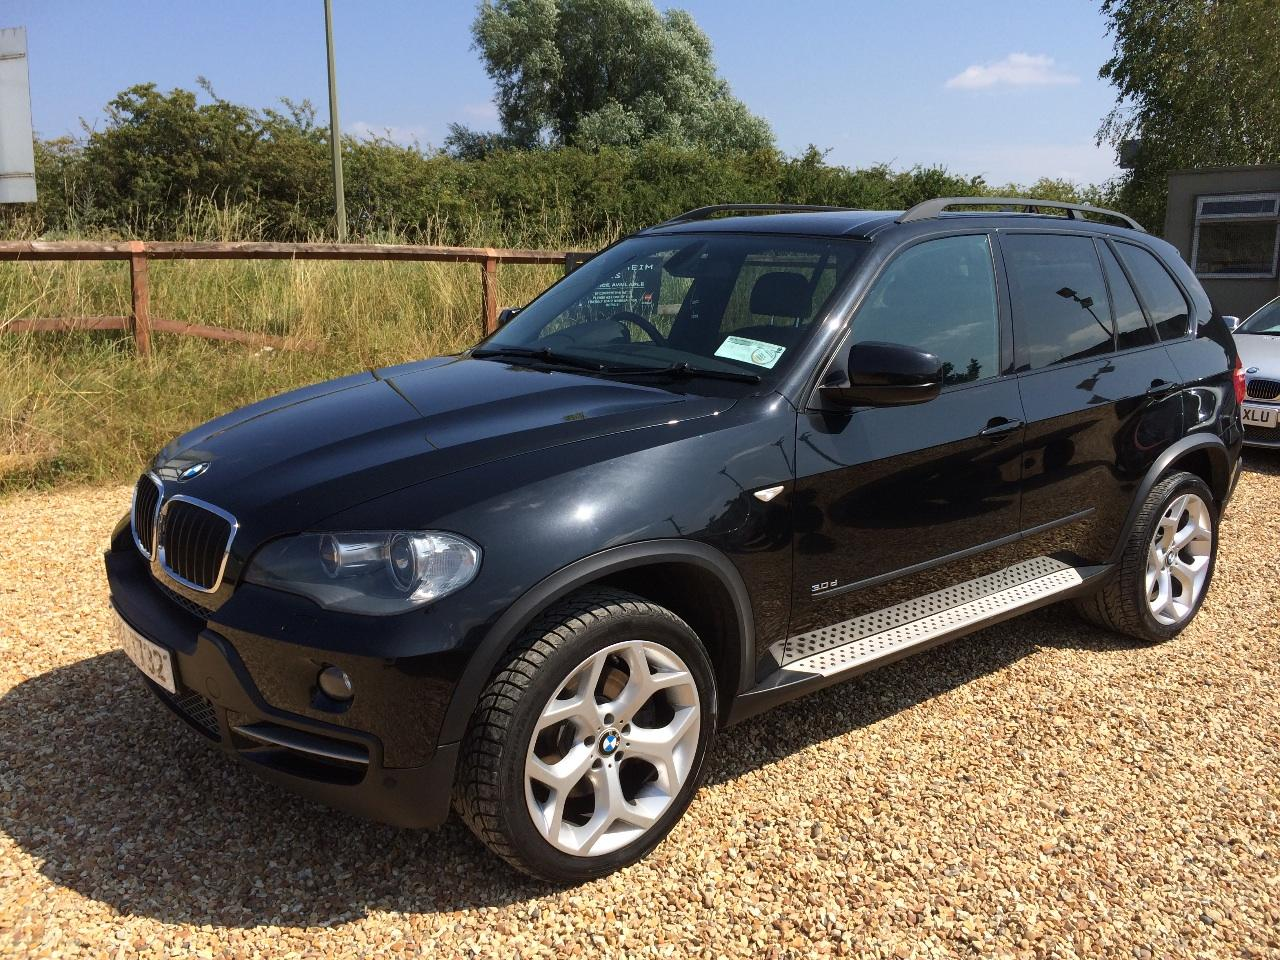 BMW X5 3.0d SE 5dr Auto [7 Seat] Four Wheel Drive Diesel Black